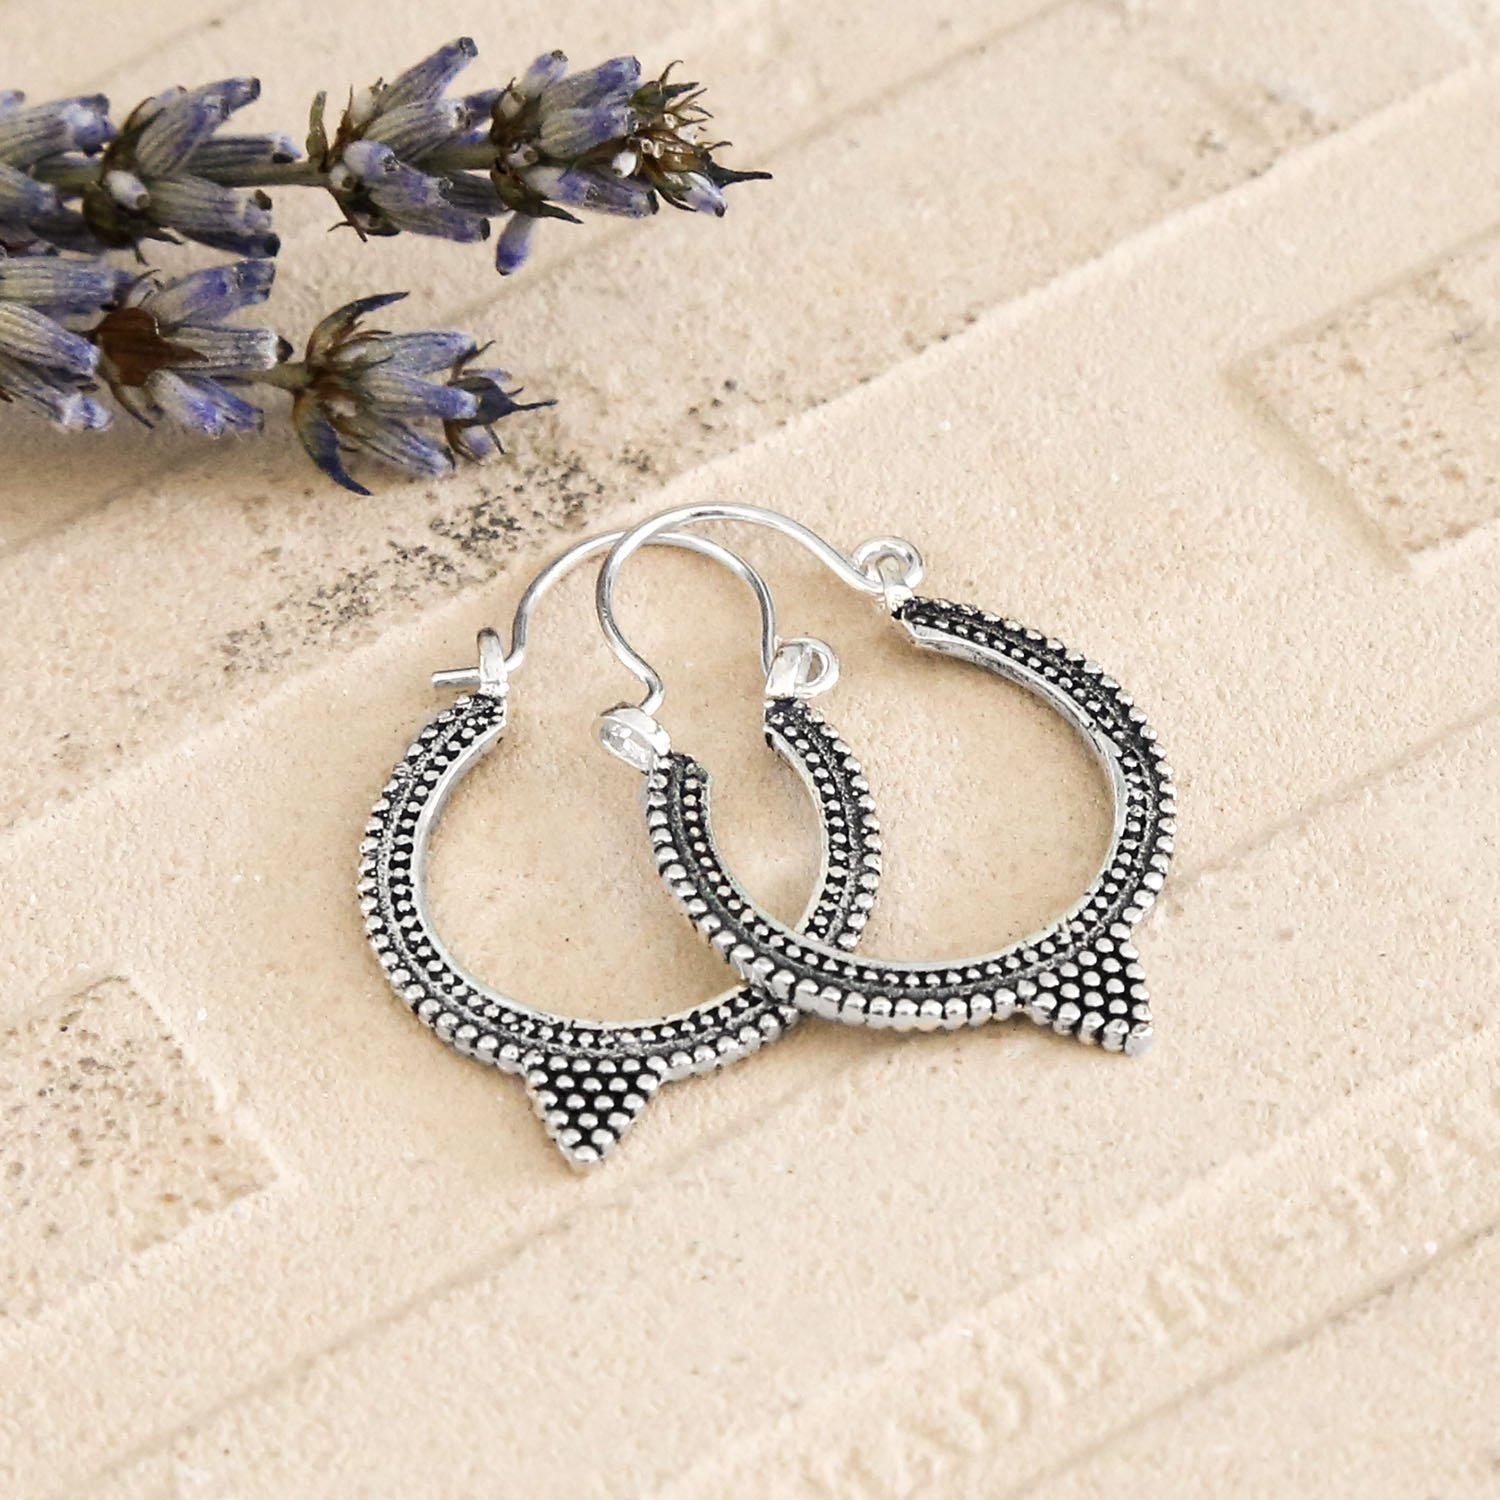 Silver Hooops with intricate Circle Oxidised Detail on a terracotta tile with Dried Lavender